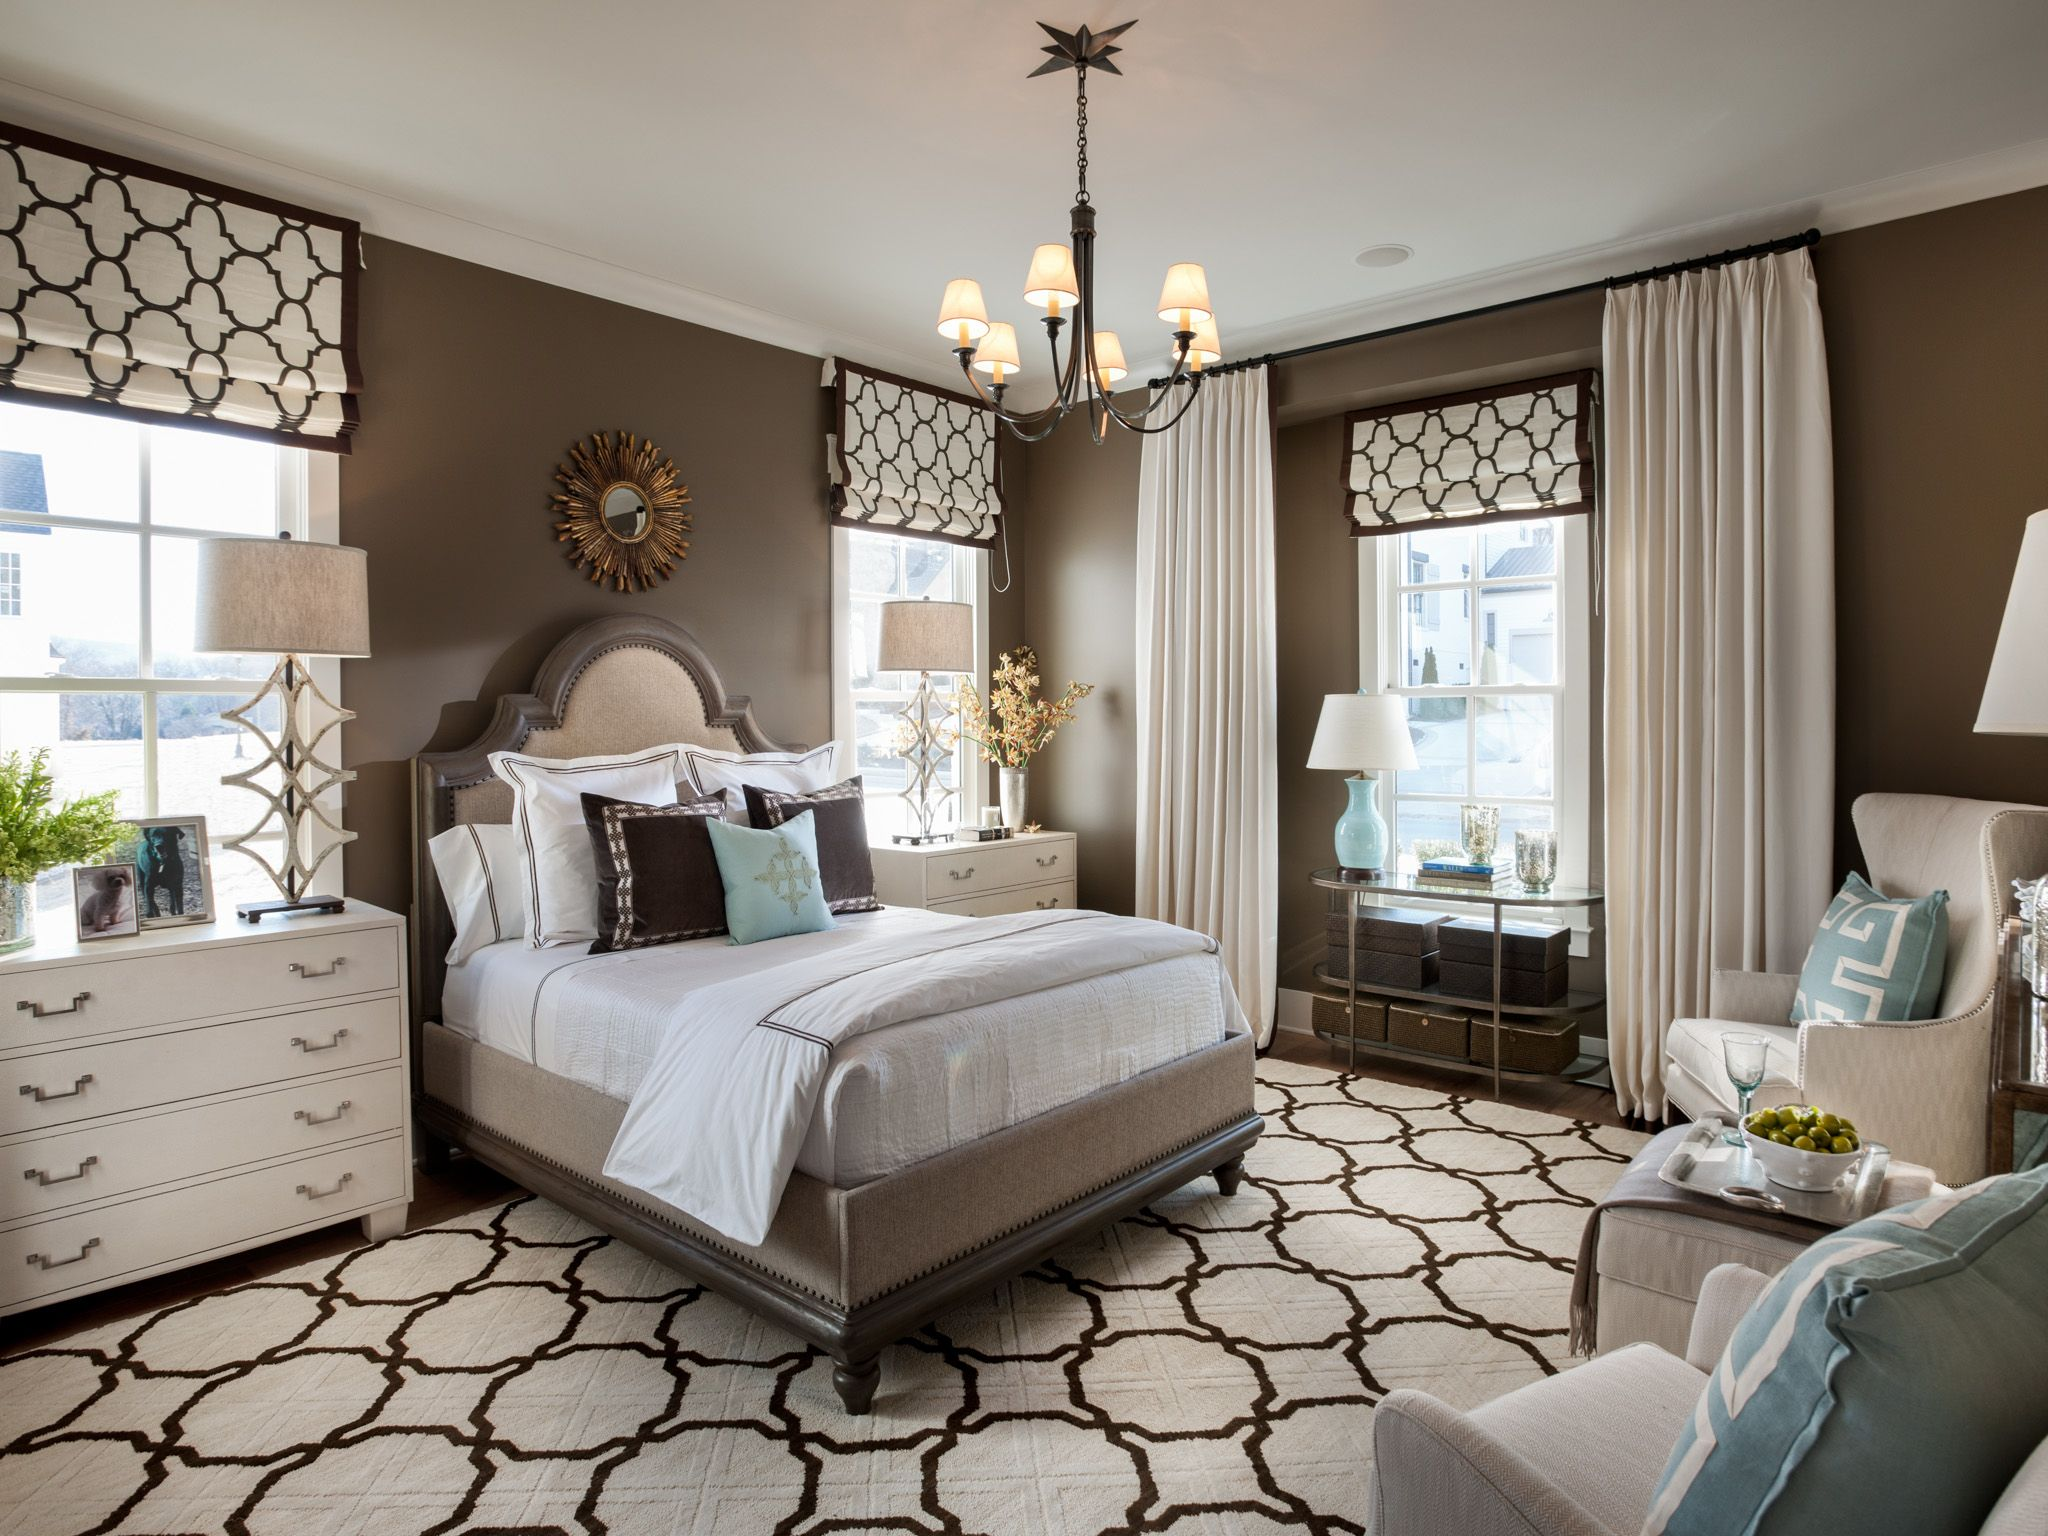 10 Bedroom Trends to Try | Bedroom pictures, Hgtv and Master bedroom